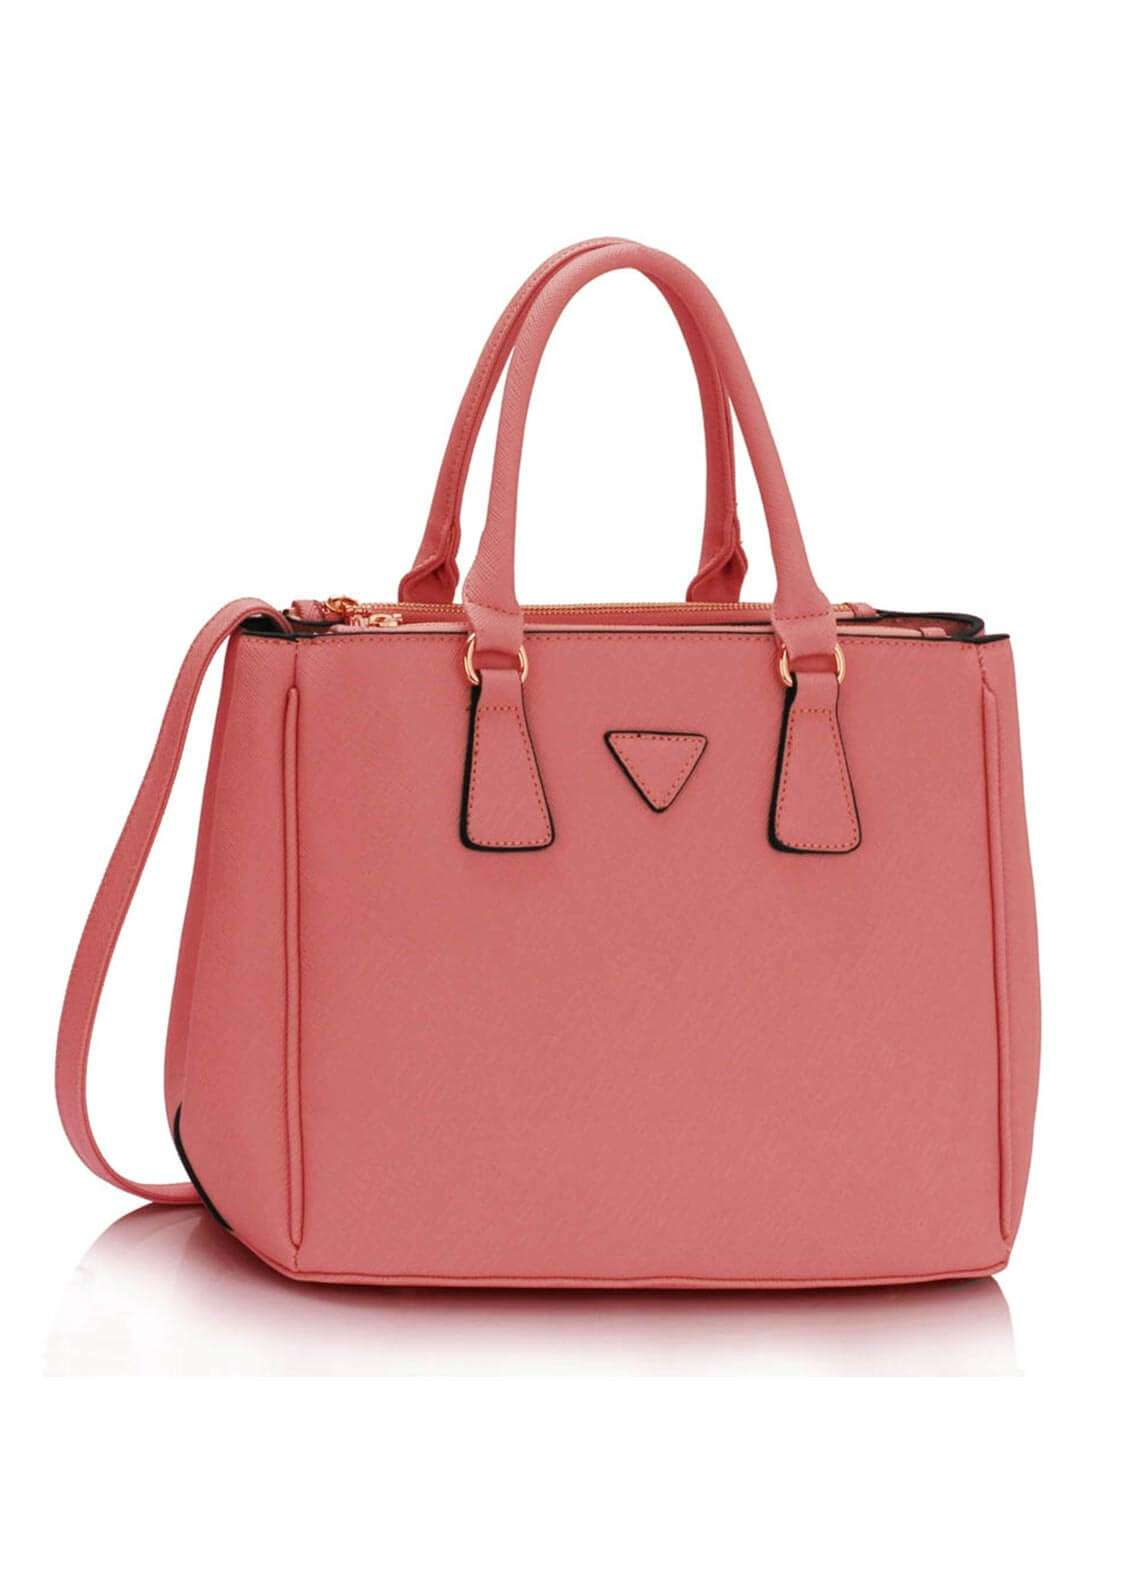 Fashion Only Faux Leather Tote  Bags for Woman - Pink